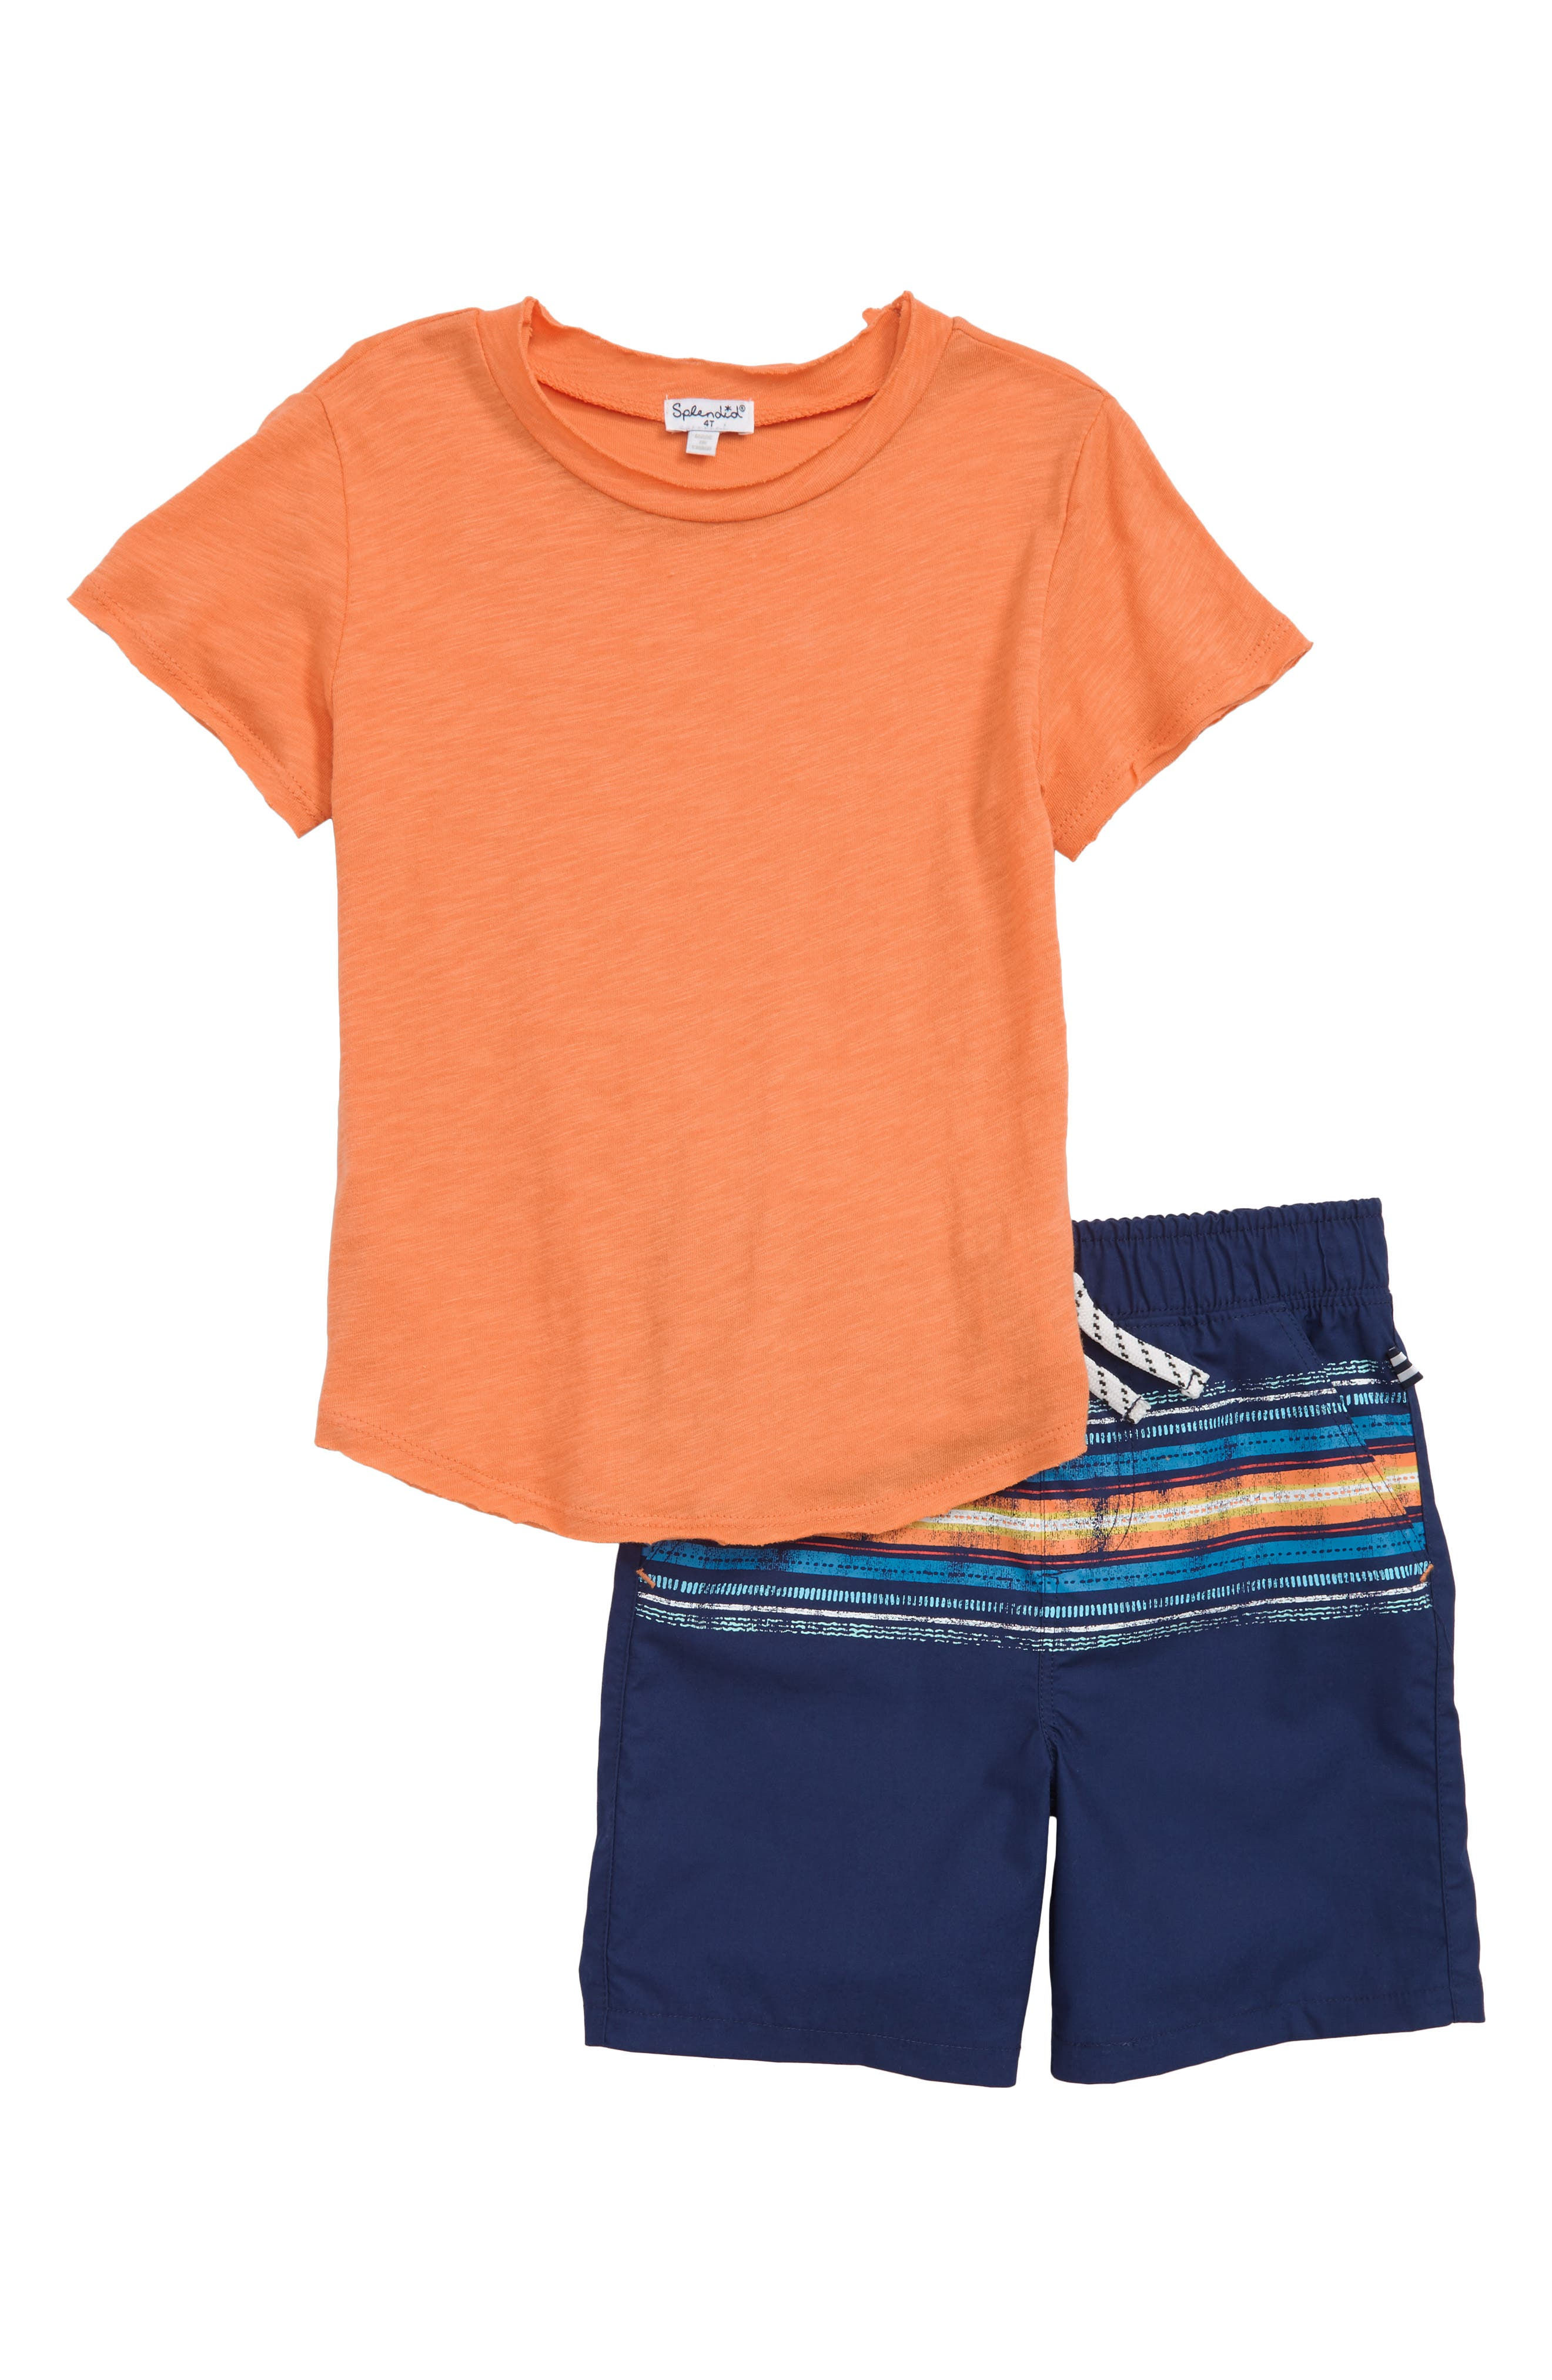 T-Shirt & Stripe Shorts Set,                             Main thumbnail 1, color,                             800